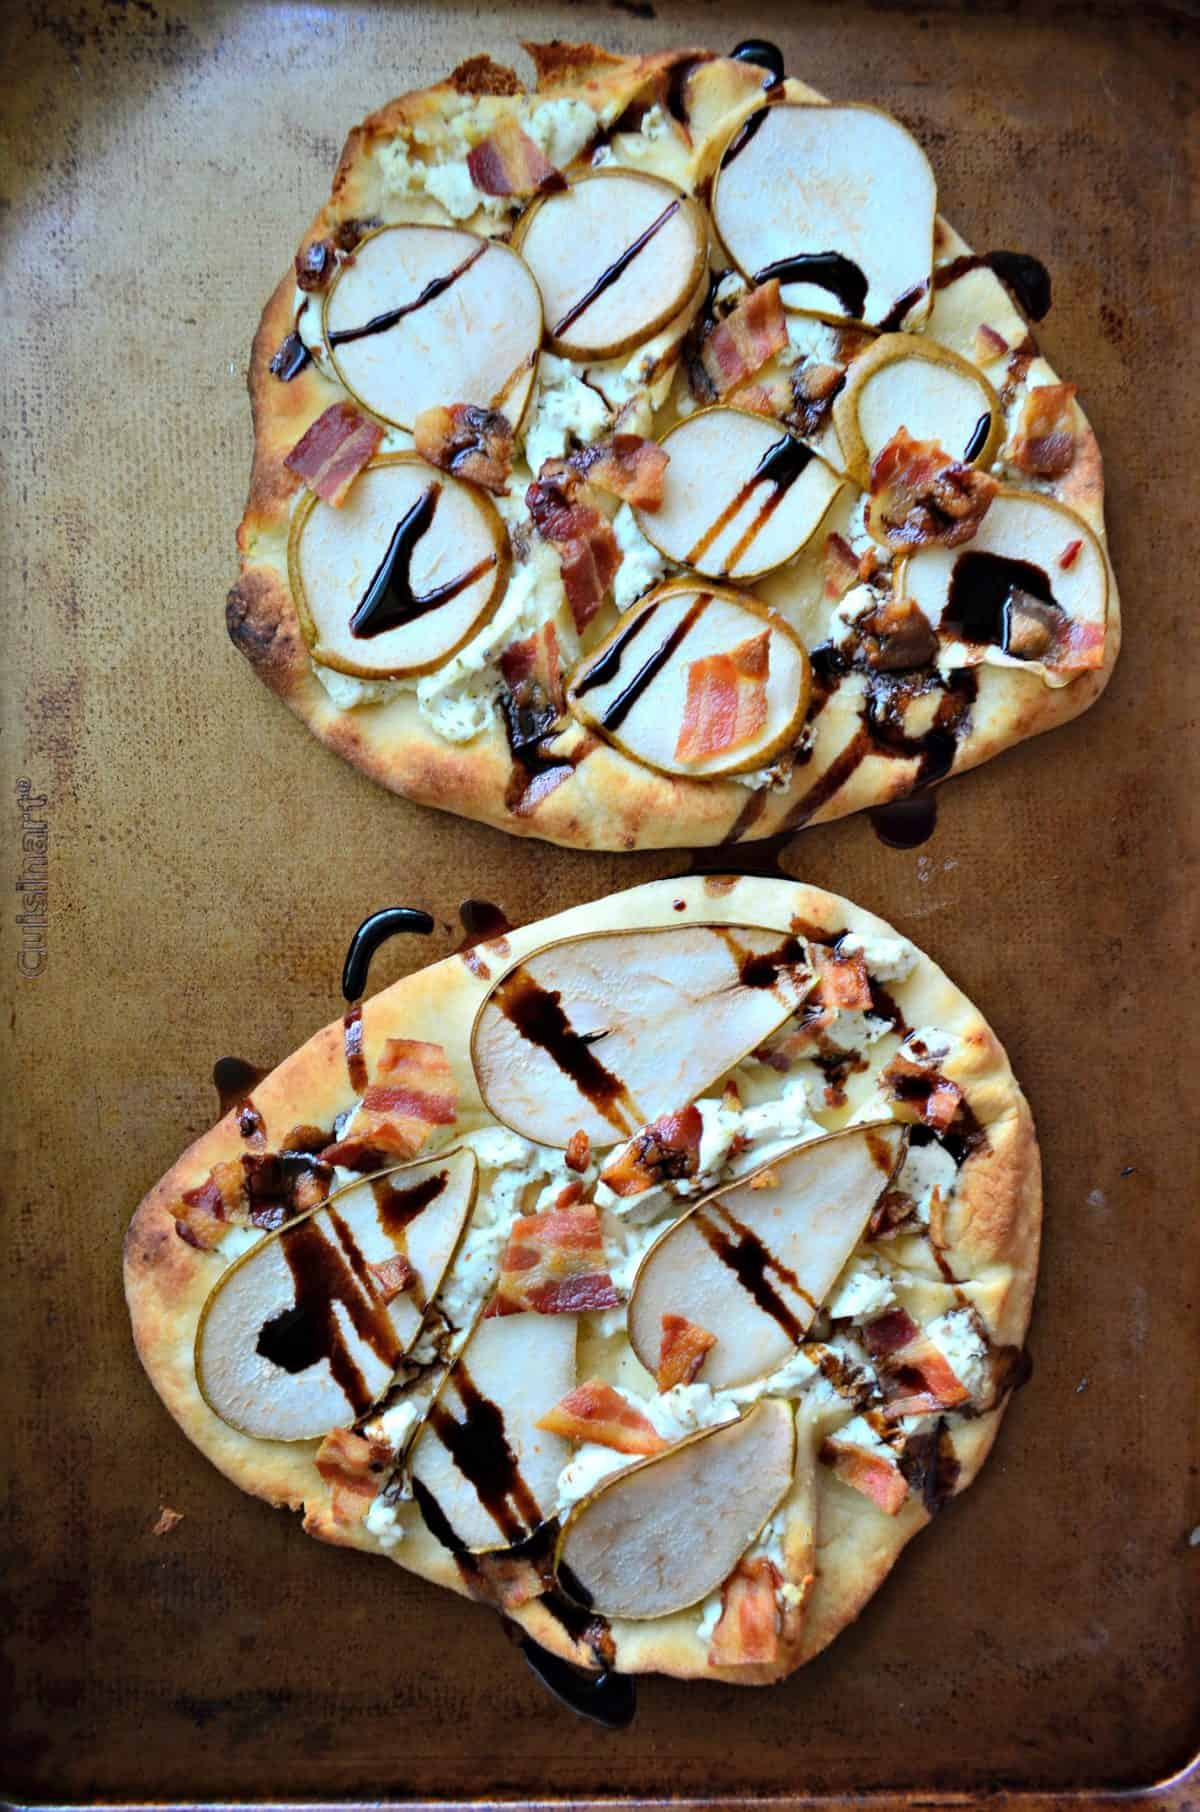 2 Goat Cheese, Bacon, and Pear Naan Flatbreads drizzled with brown sauce on light brown surface.